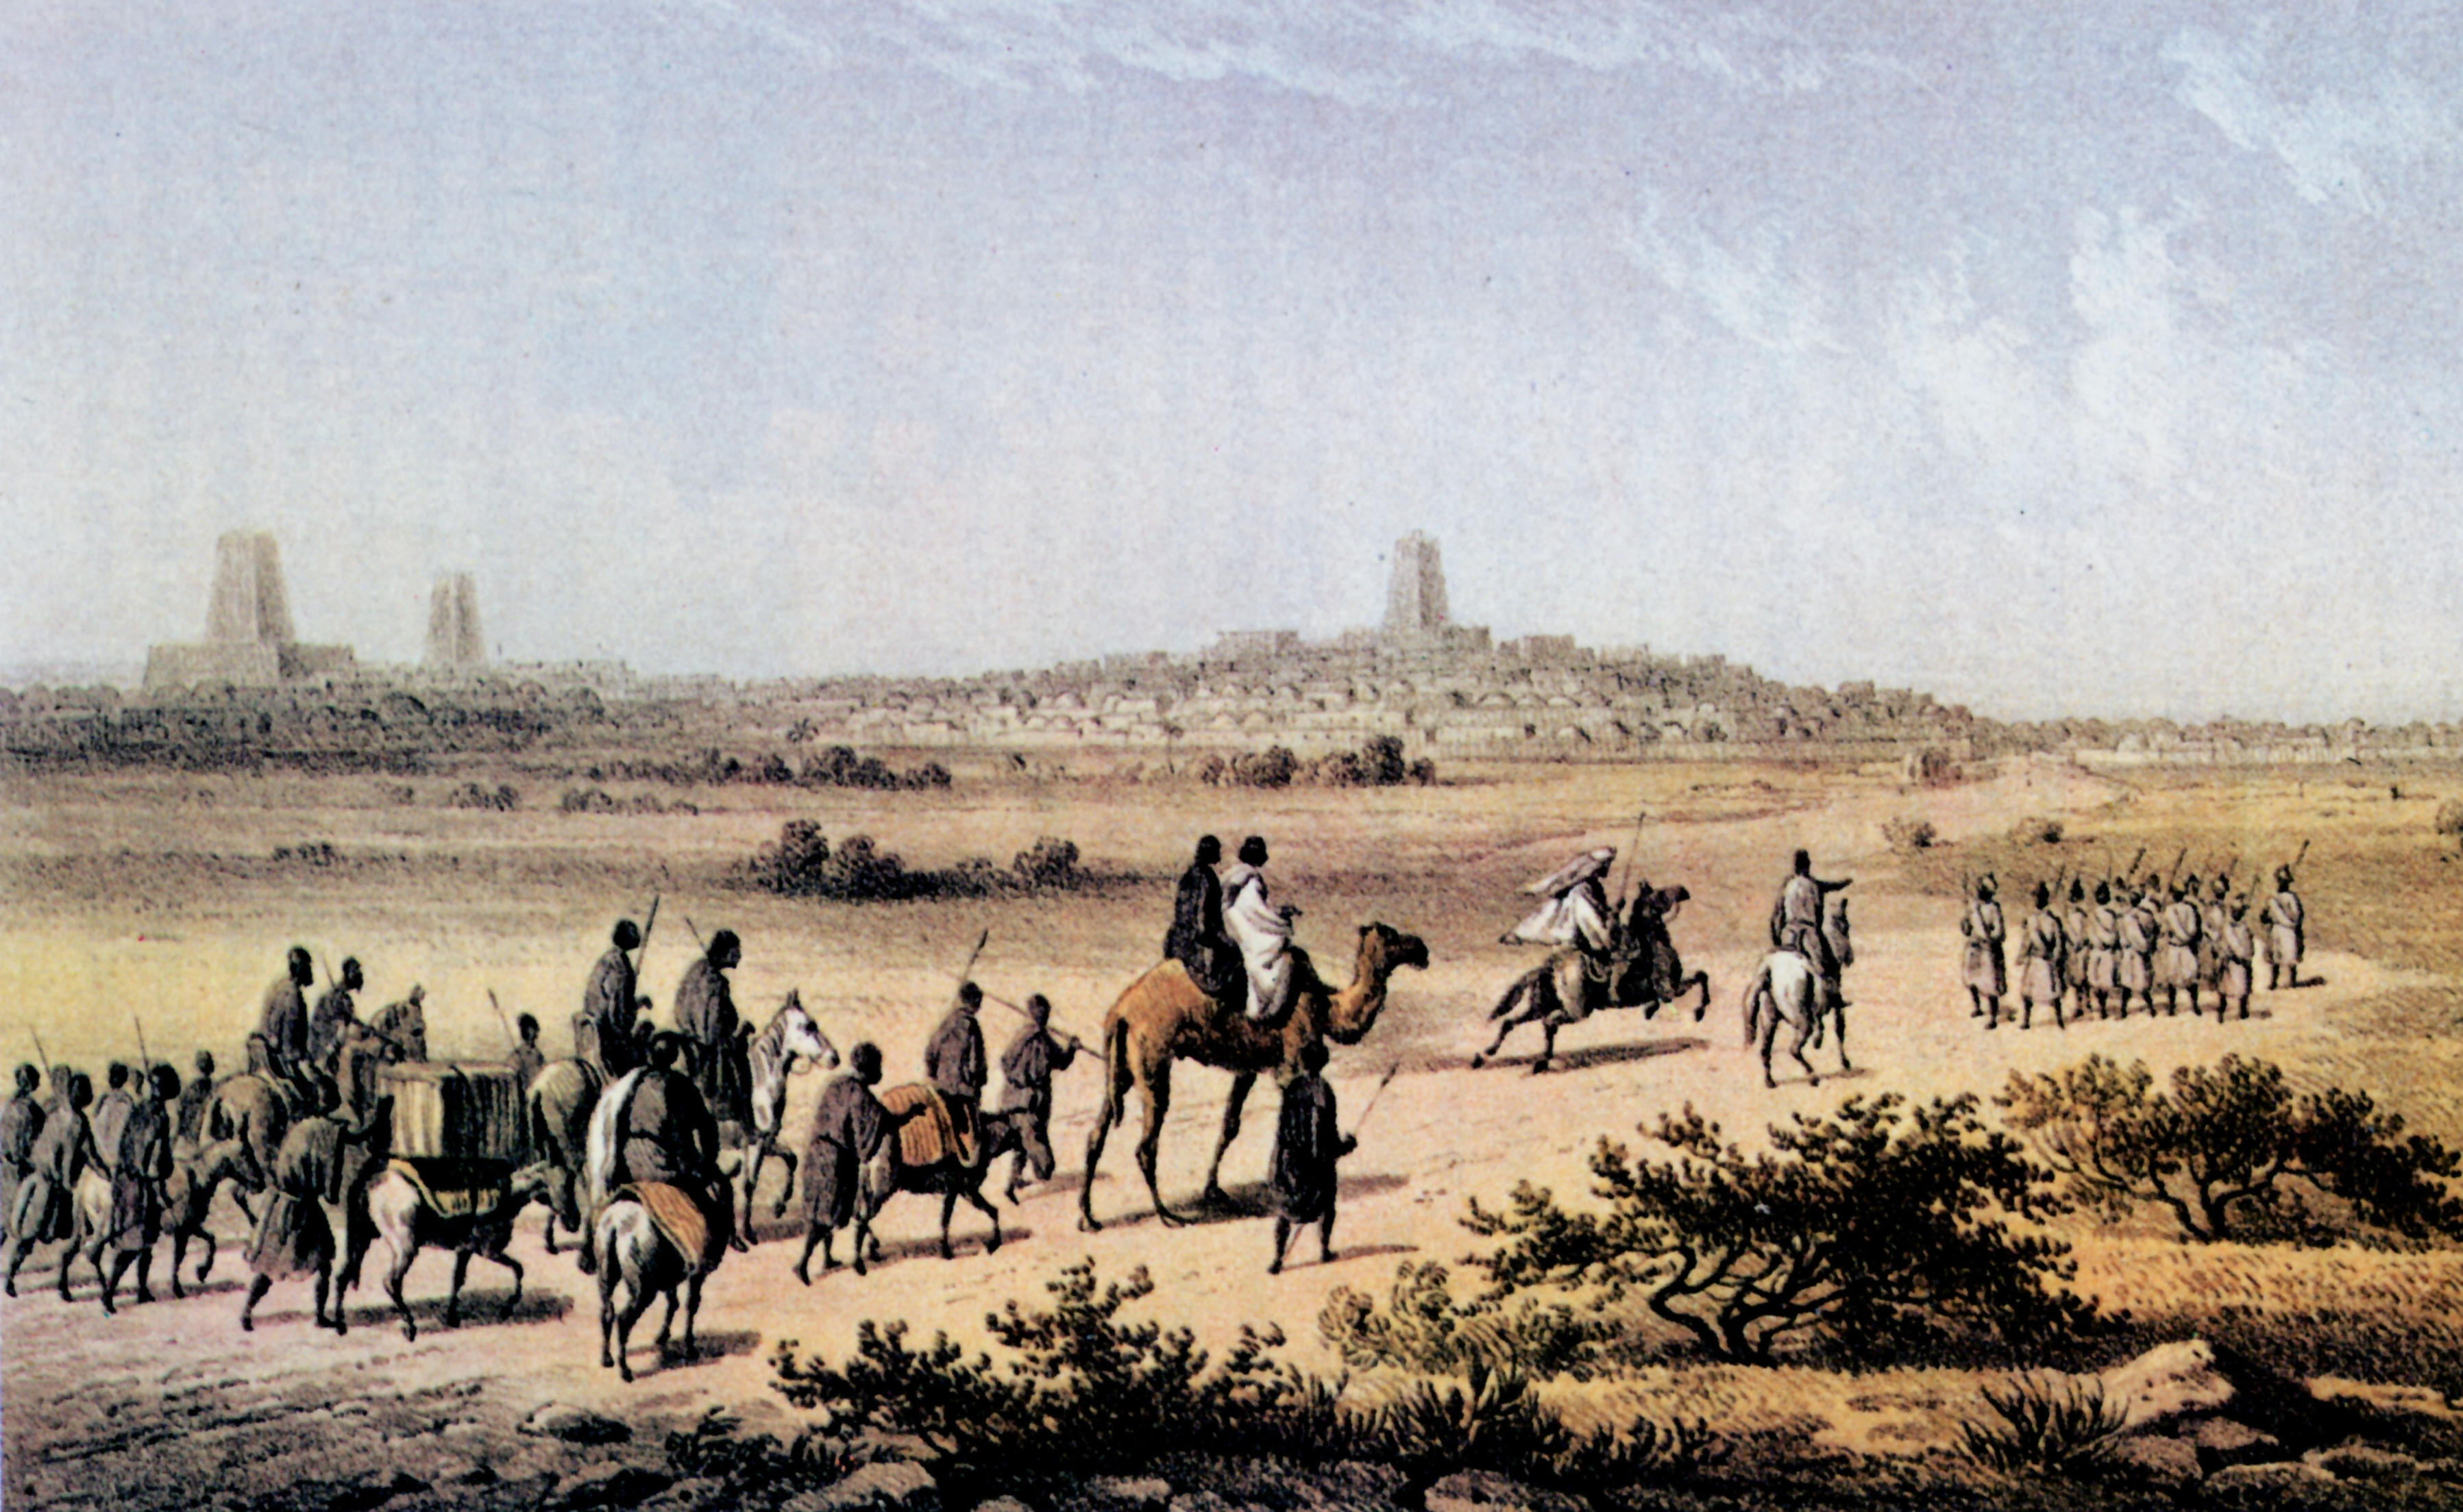 Taken From: http://upload.wikimedia.org/wikipedia/commons/2/28/TIMBUKTU-EINZUG.jpg